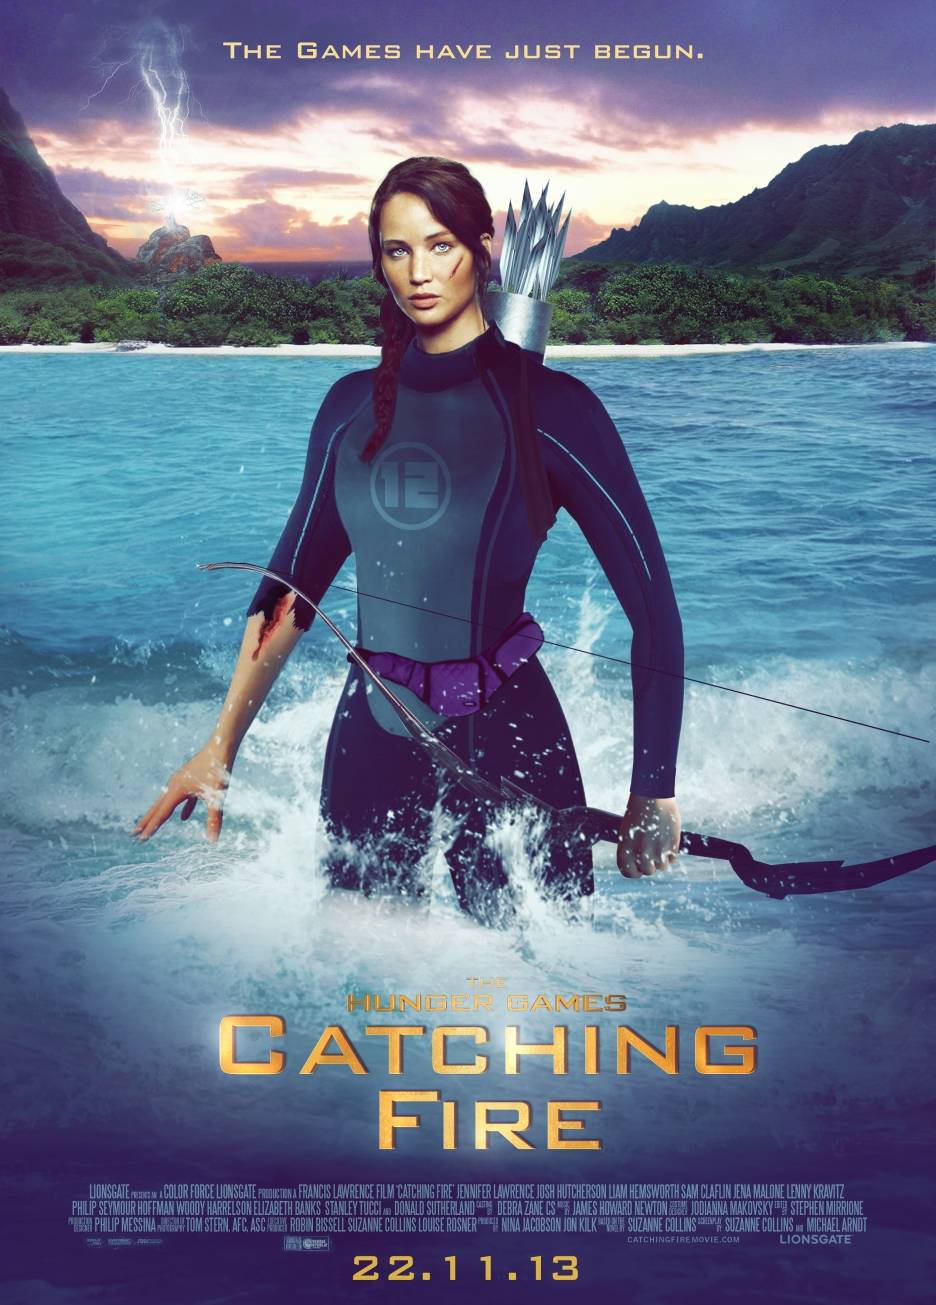 Hunger Games Catching Fire poster movieloversreviews.filminspector.com